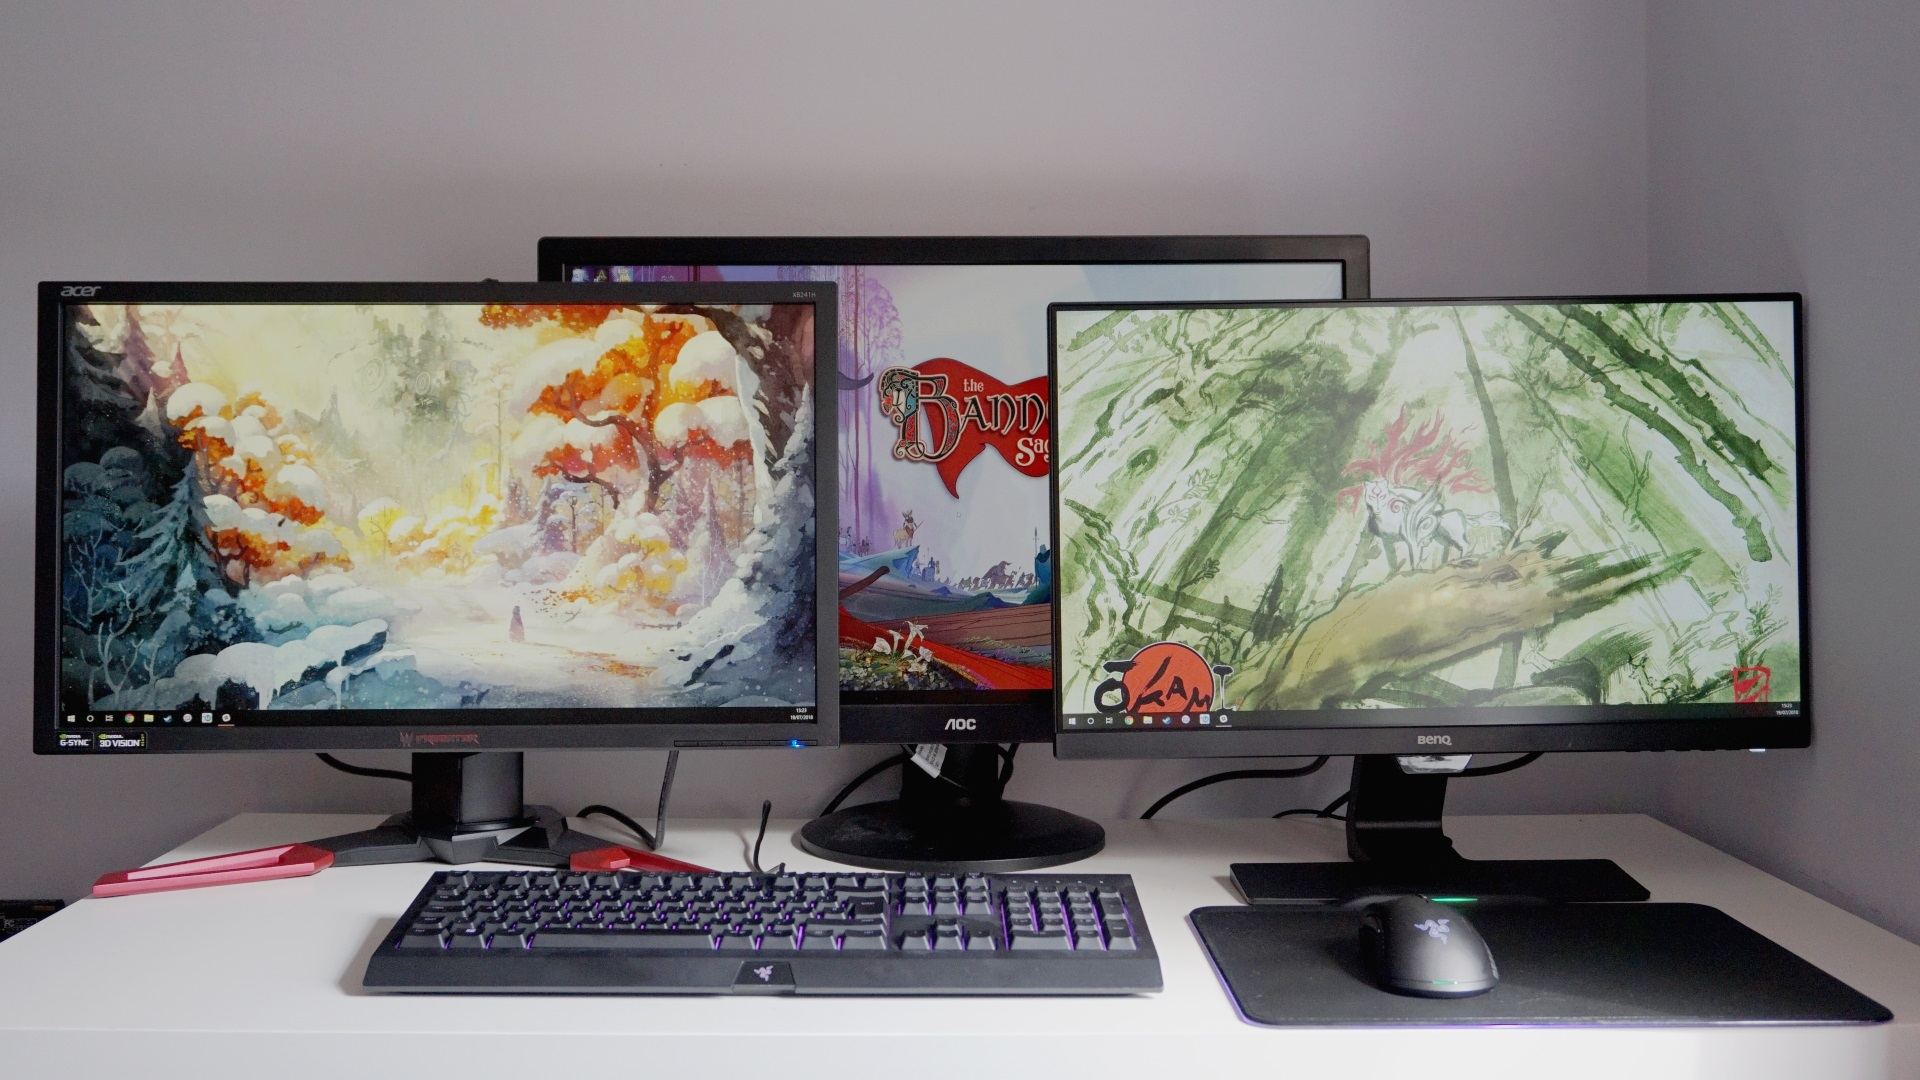 Best G Sync Monitor 2020 Best gaming monitor 2019: Top 1080p, 1440p and 4K HDR displays